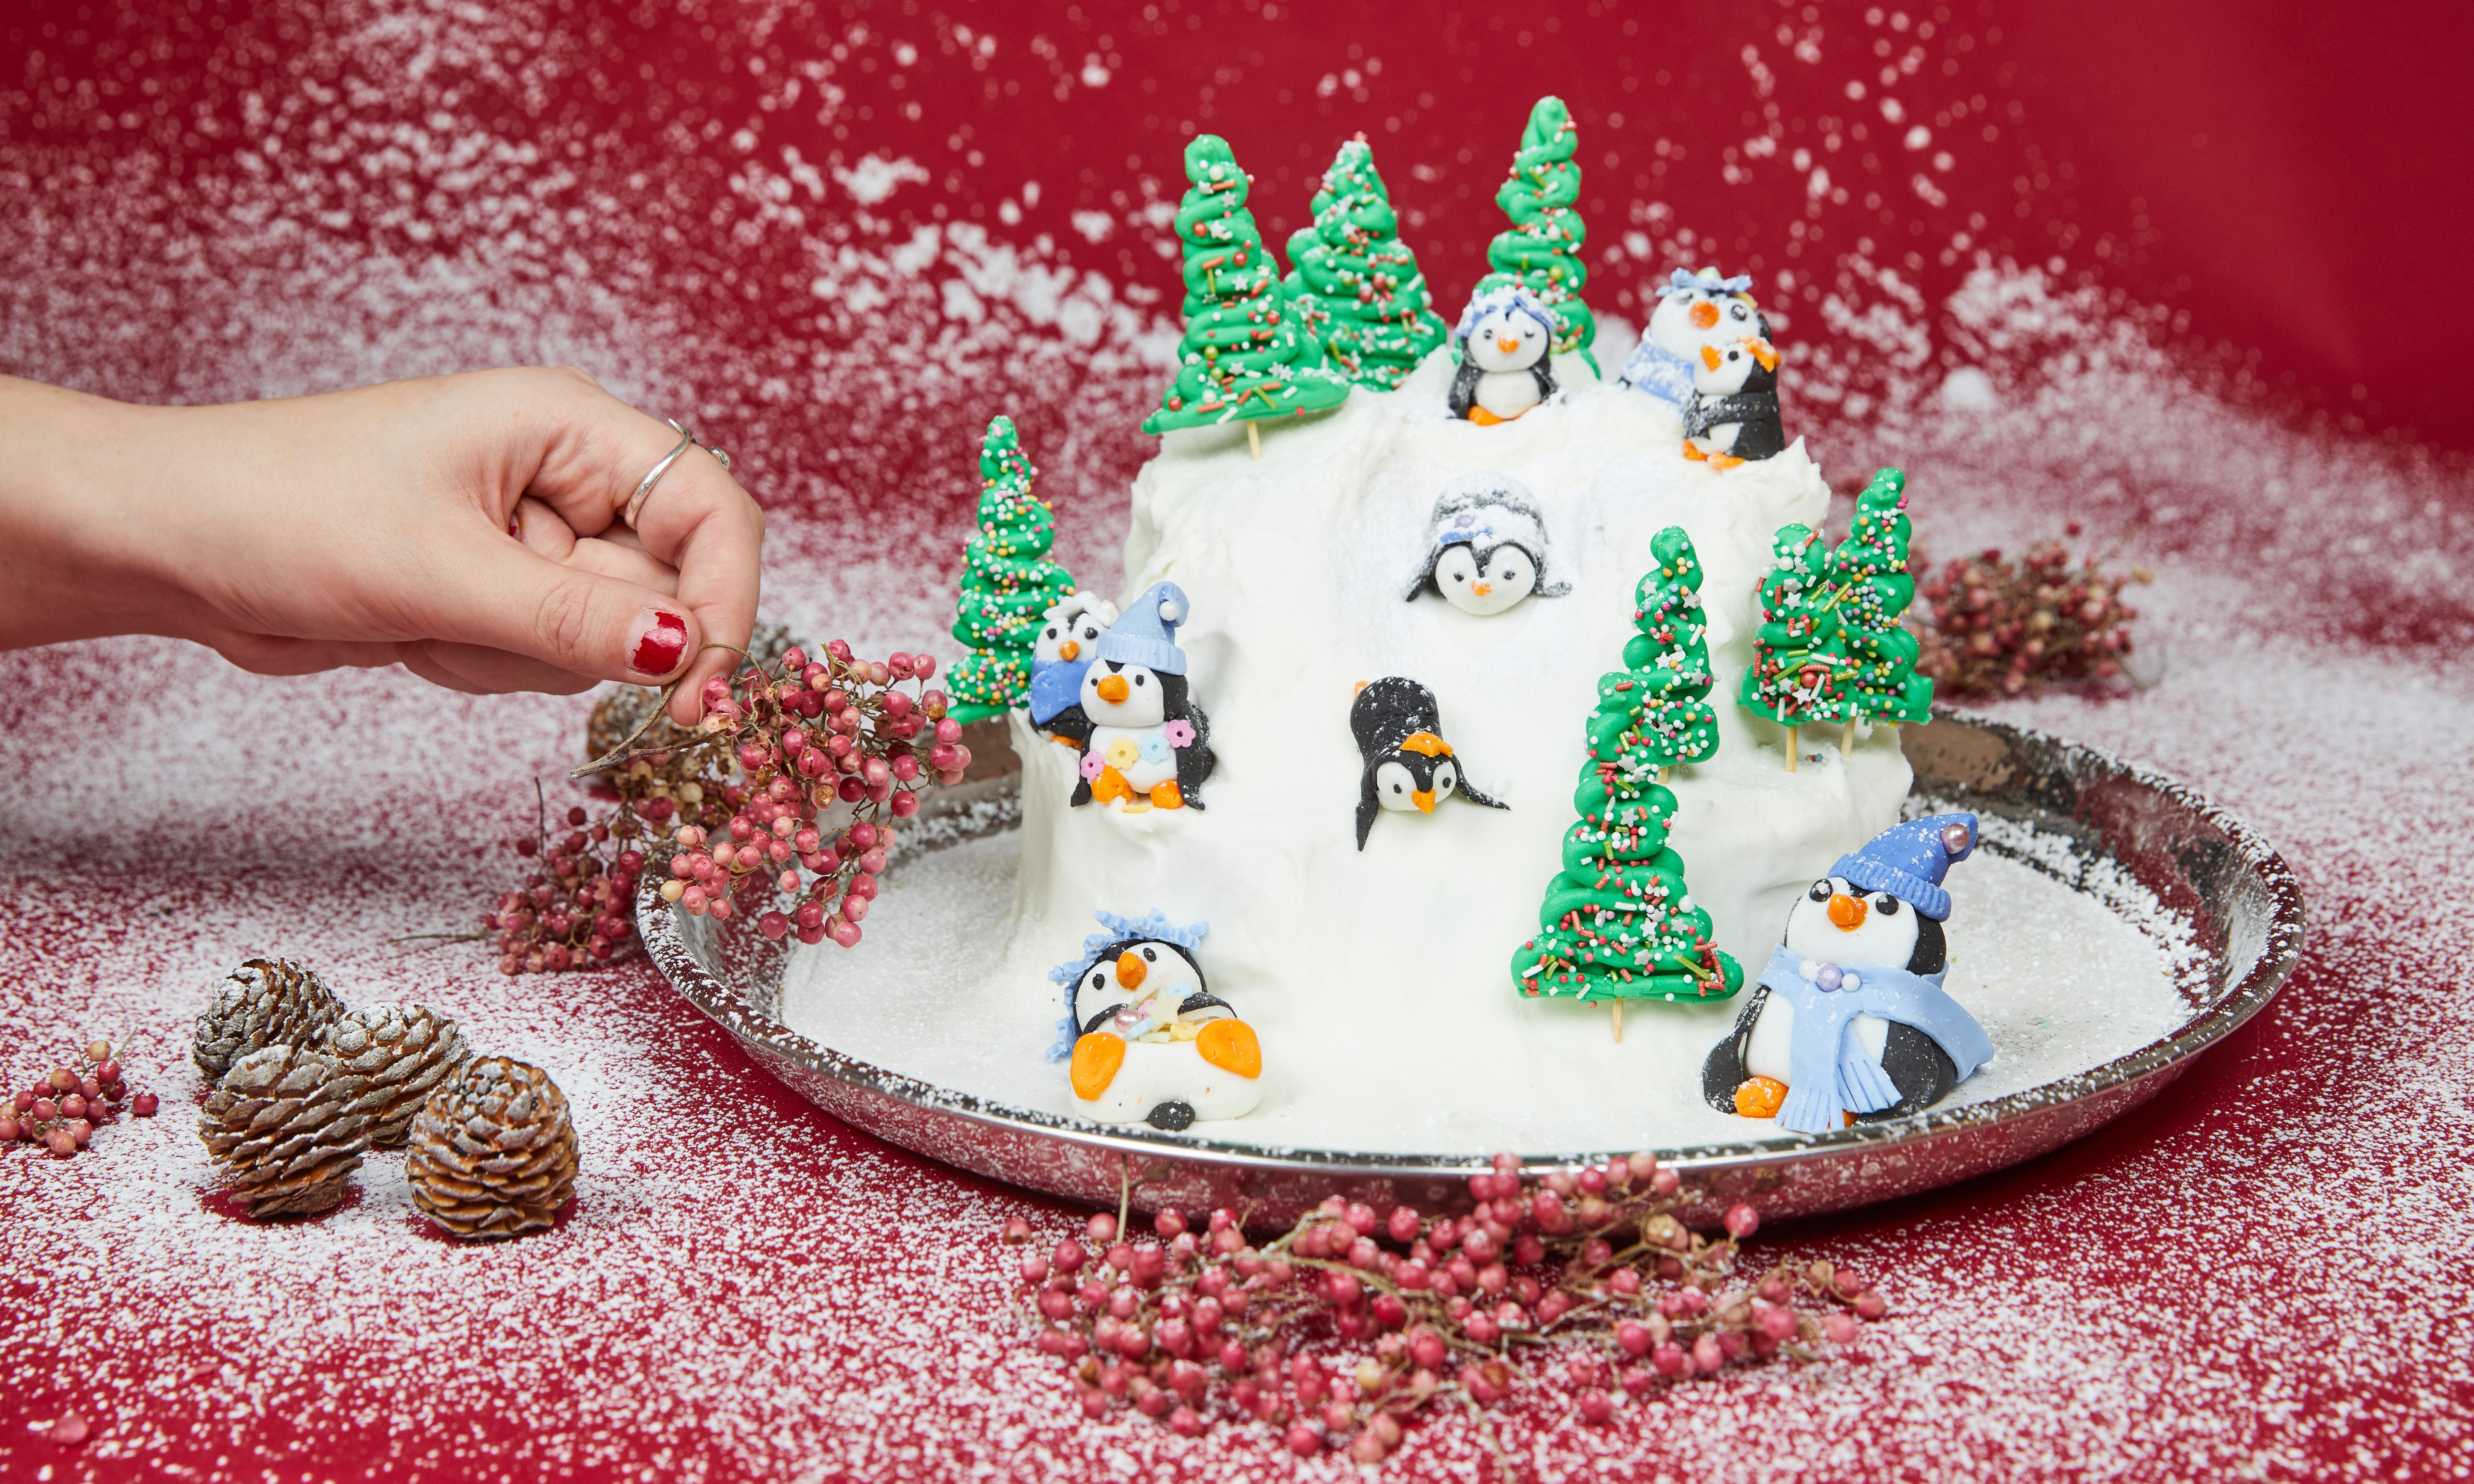 'Guests love the playful penguins': Kim-Joy's guide to a very edible Christmas